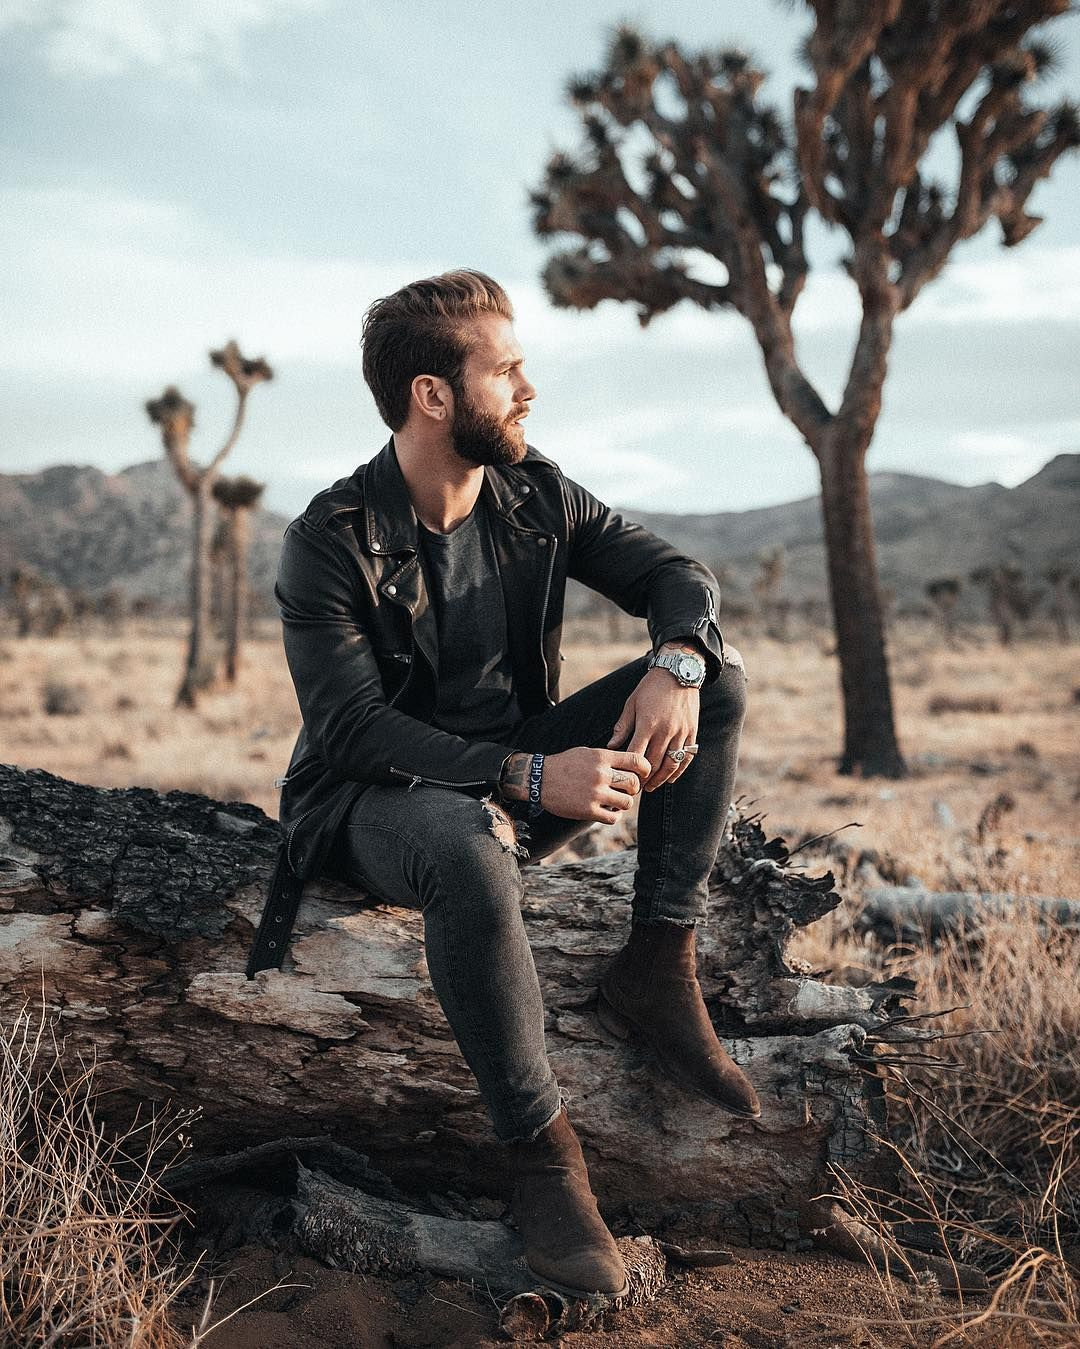 Pin By Vinpuc On Male Photography Poses In 2020 Portrait Photography Men Outdoor Portrait Photography Photography Poses For Men